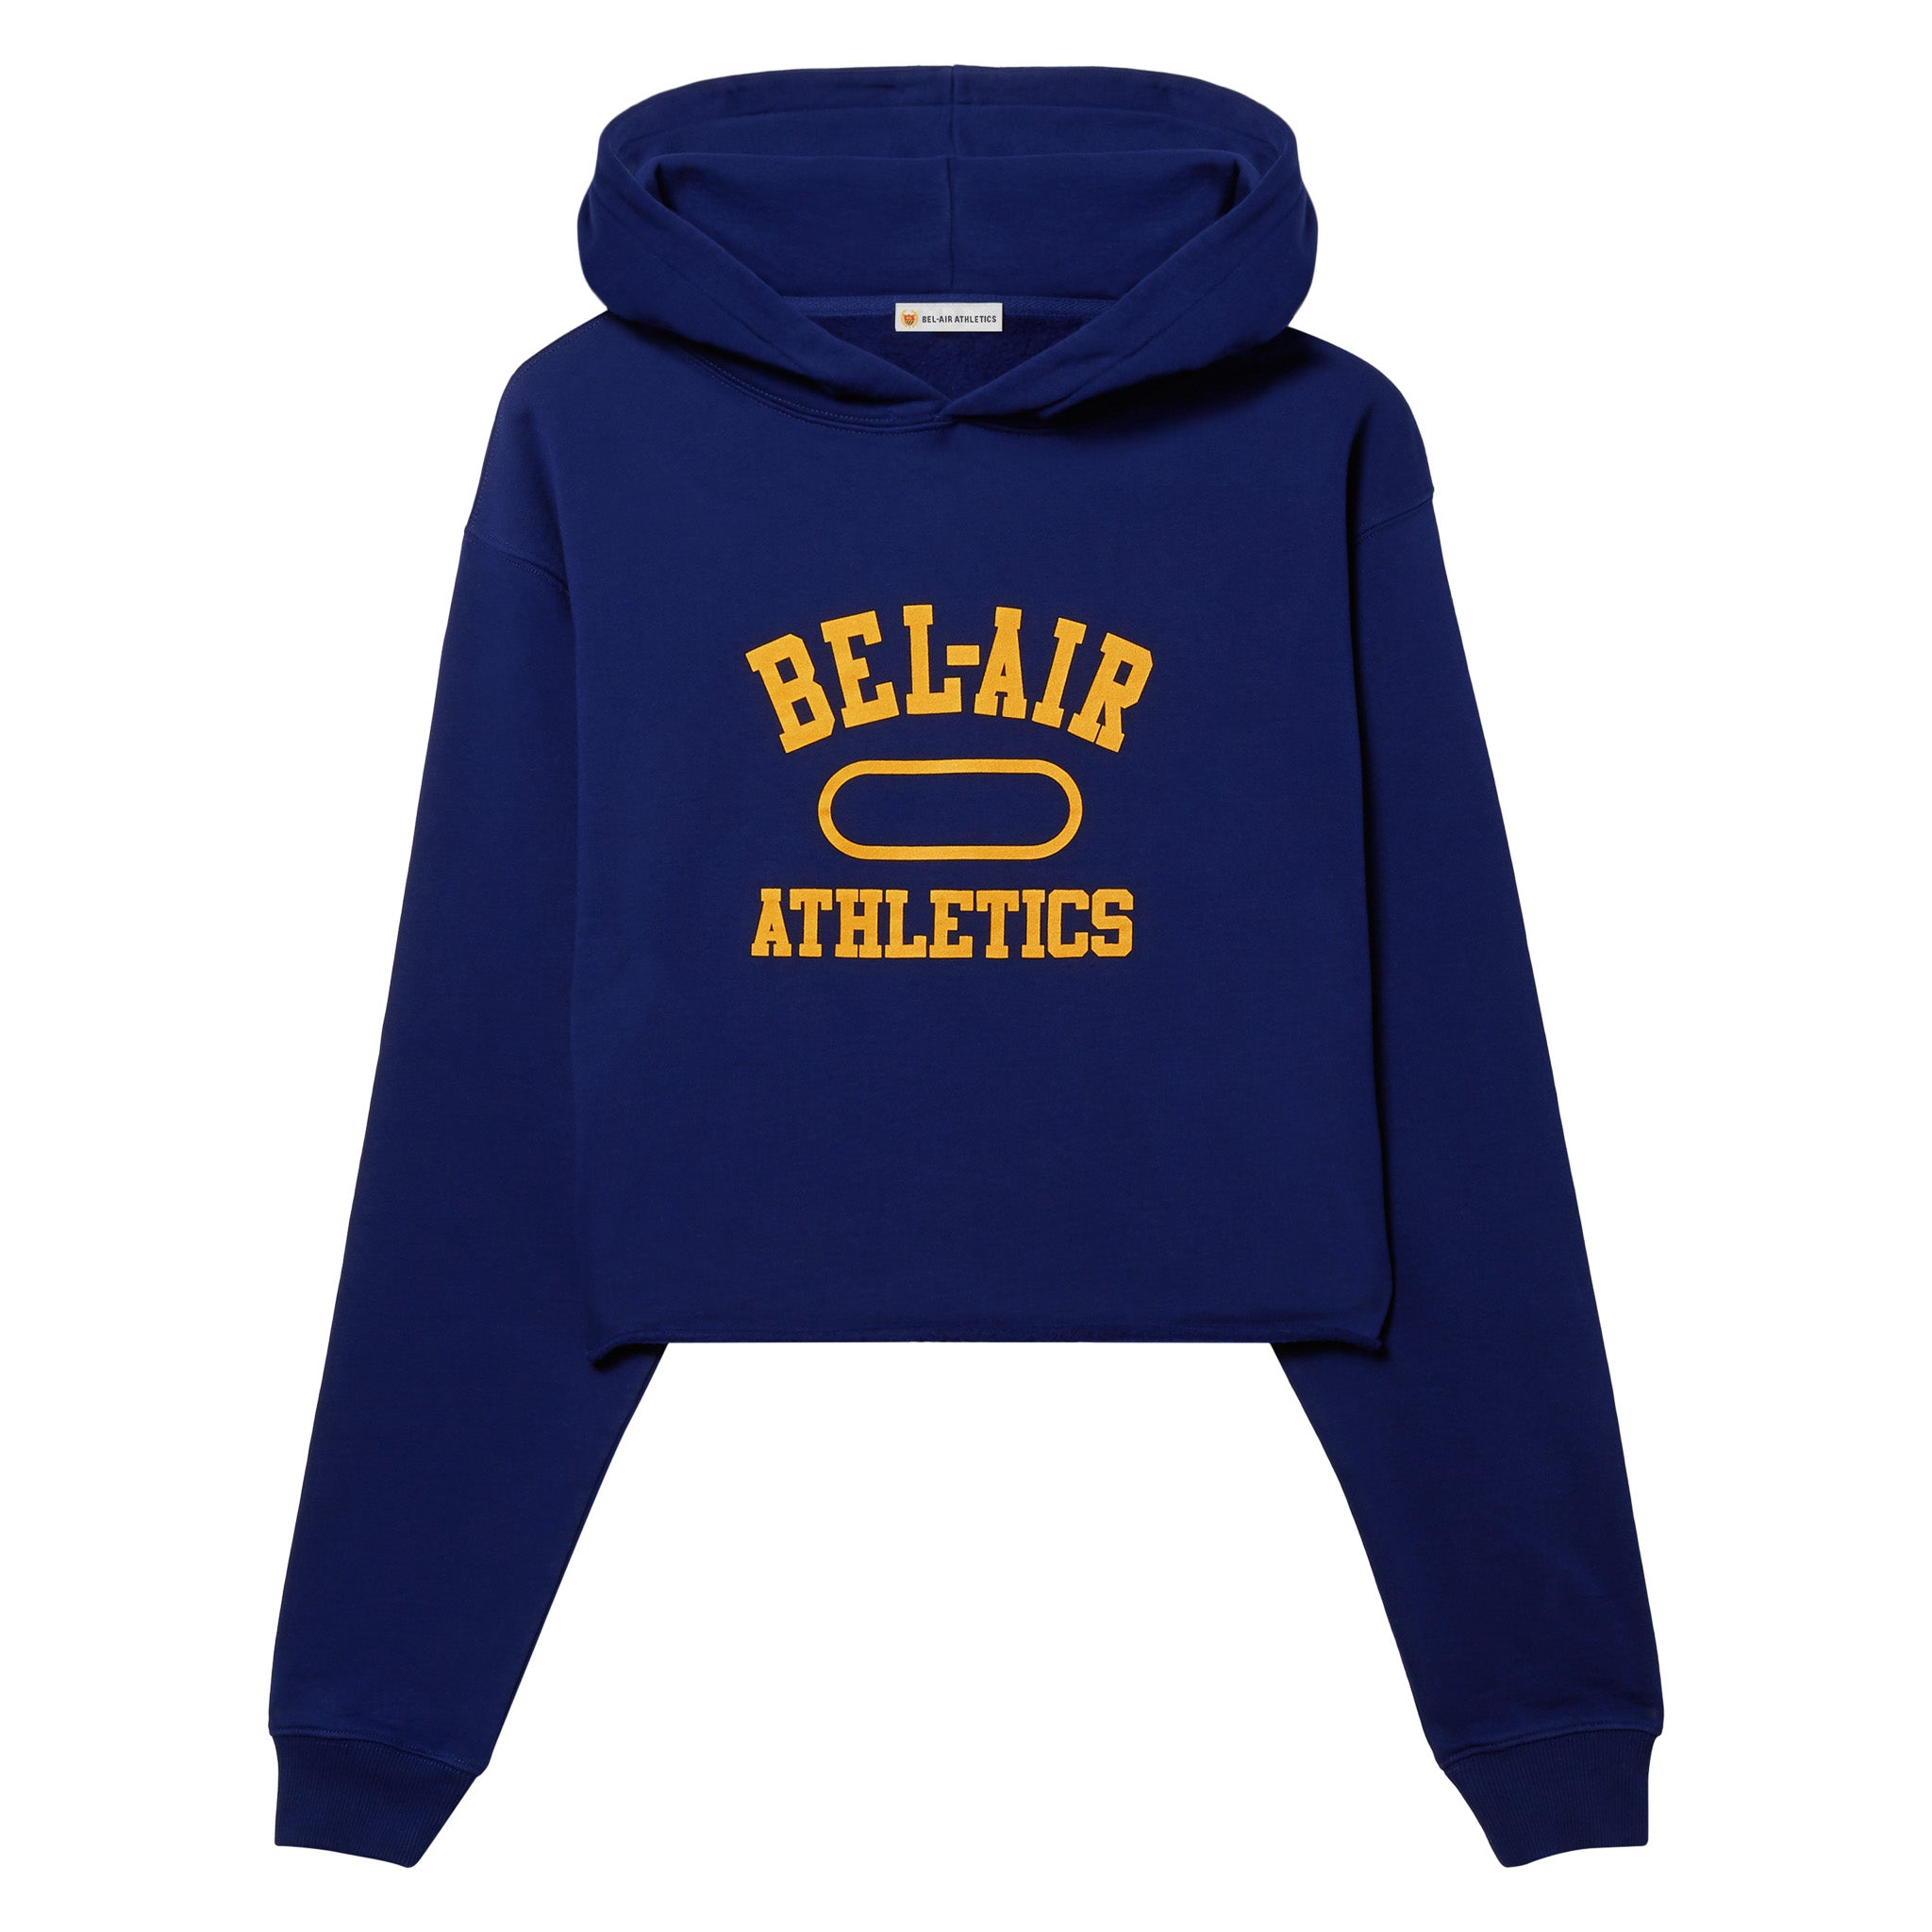 Gym logo cropped hoodie - Bel-Air Blue with Collegiate Gold print